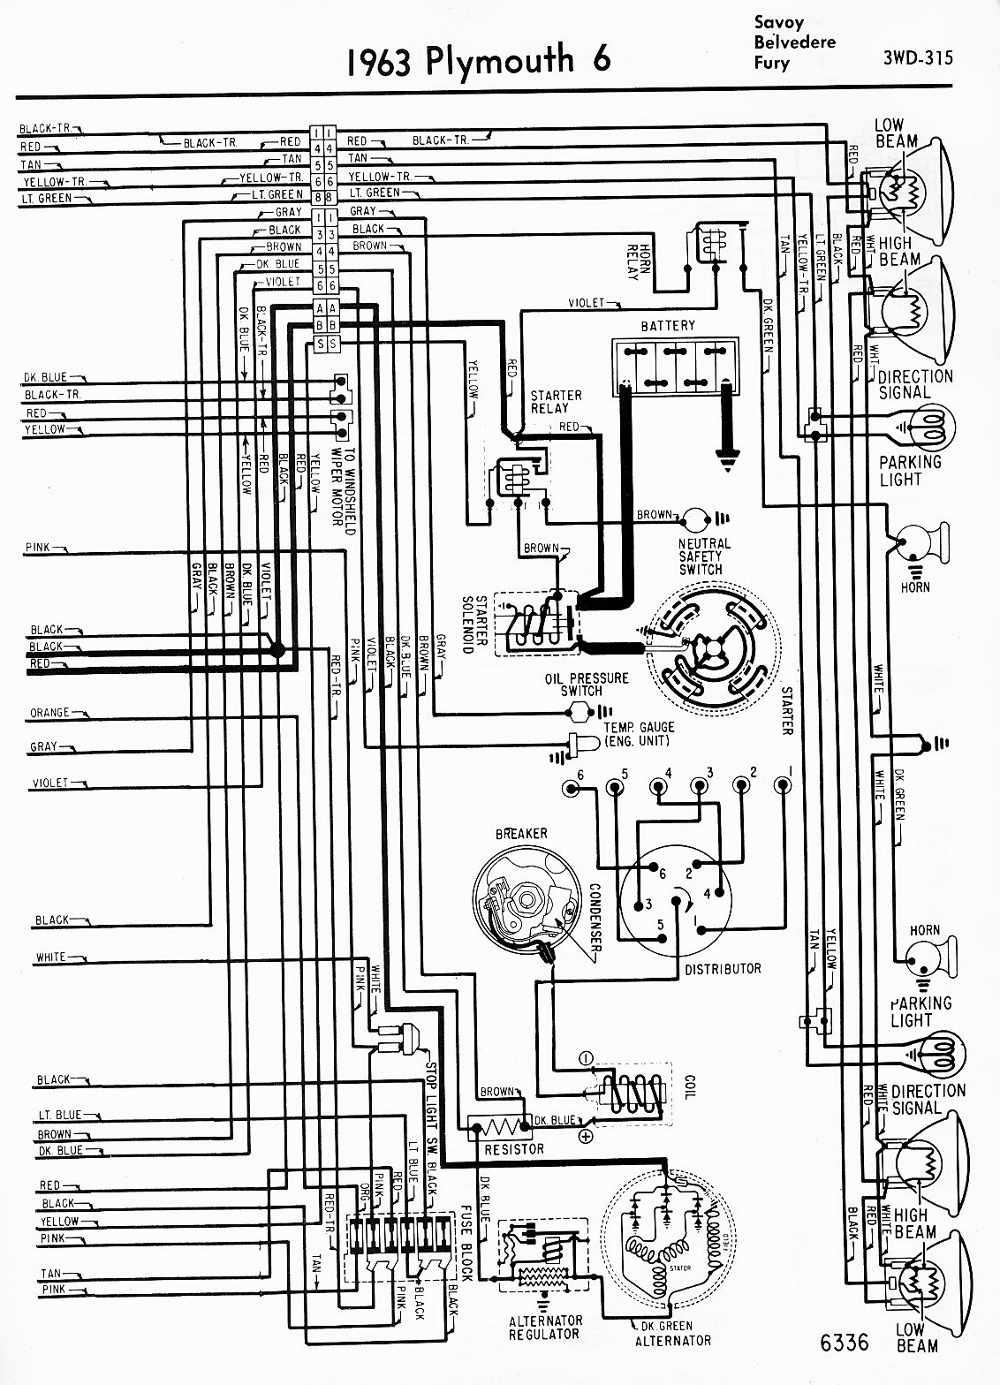 Amazing Wiring Diagrams Of 1963 Plymouth 6 Savoy Belvedere And Fury Part 2 Wiring Cloud Hemtshollocom